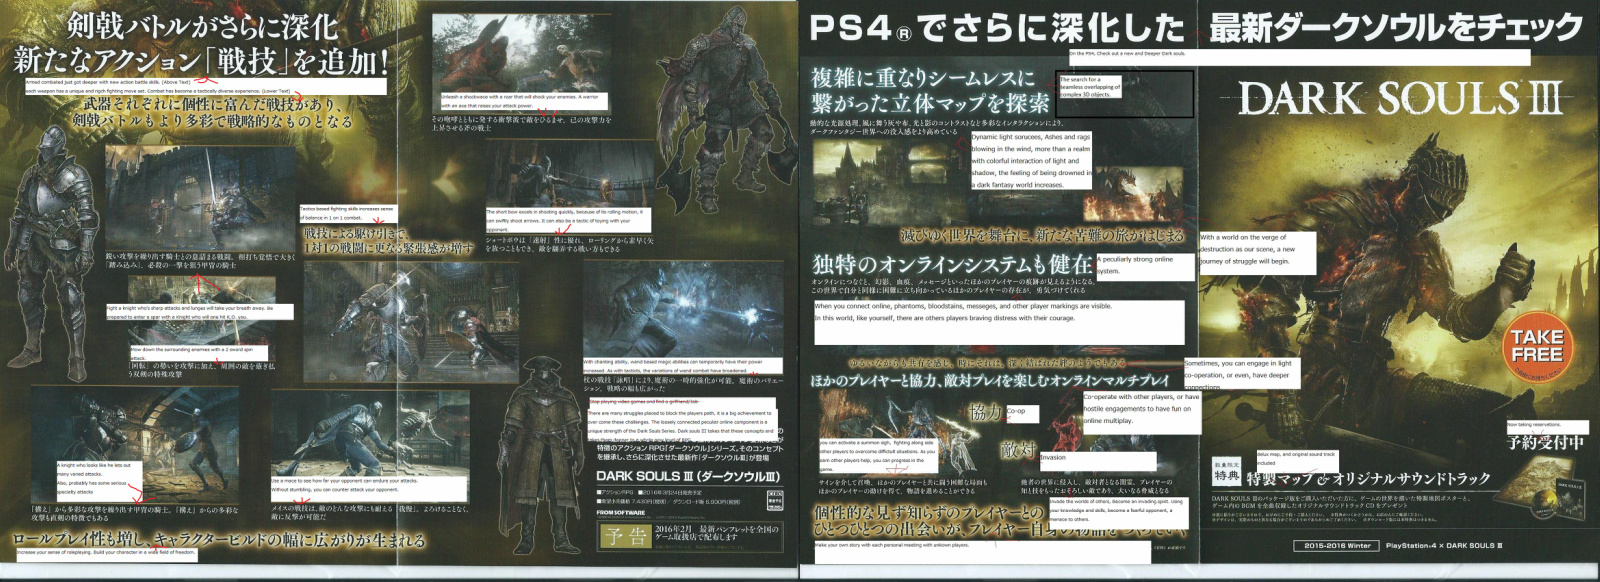 dark-souls-3-flyer-nat-games